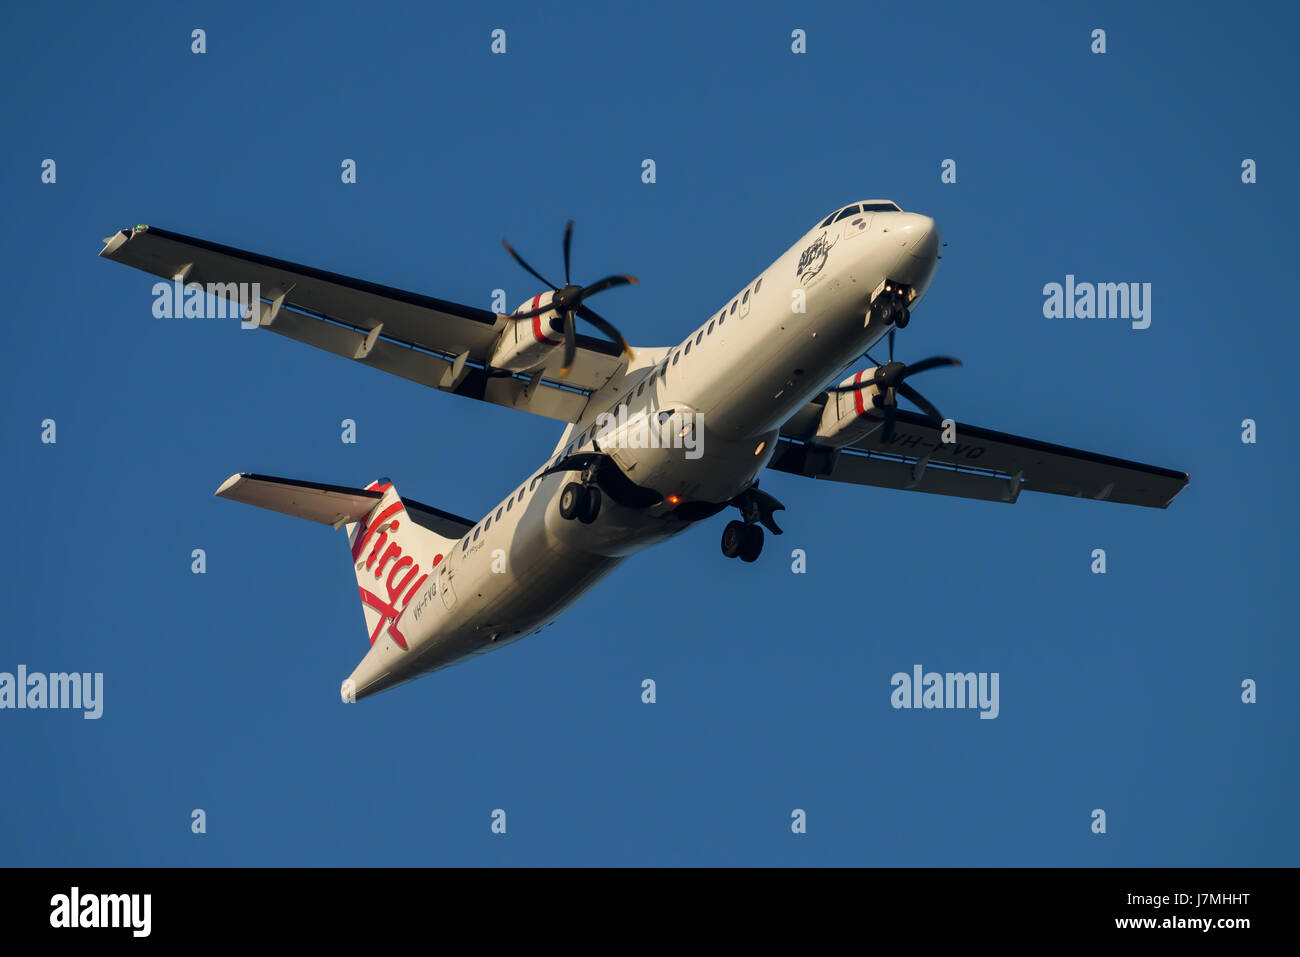 Virgin Australia ATR 72 on Final approach to Sydney Airport on Tuesday 23 May 2017 - Stock Image